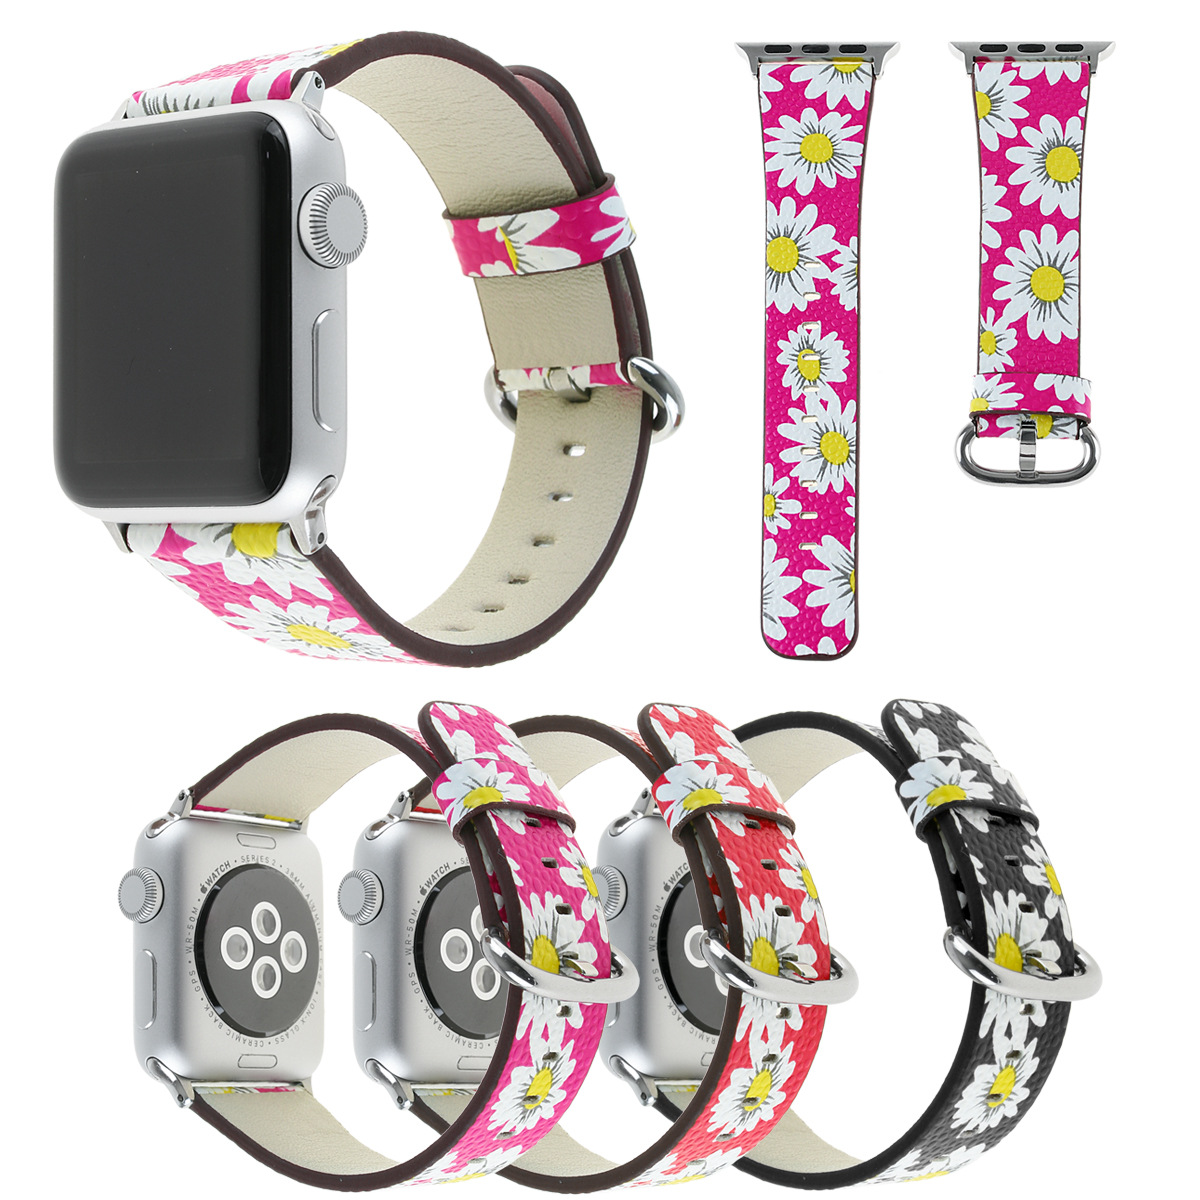 Europe And America Hot Sales Apple Watch Band Chrysanthemum Genuine Leather Wrist Strap Applicable APPLE IWatch4321 Generation H